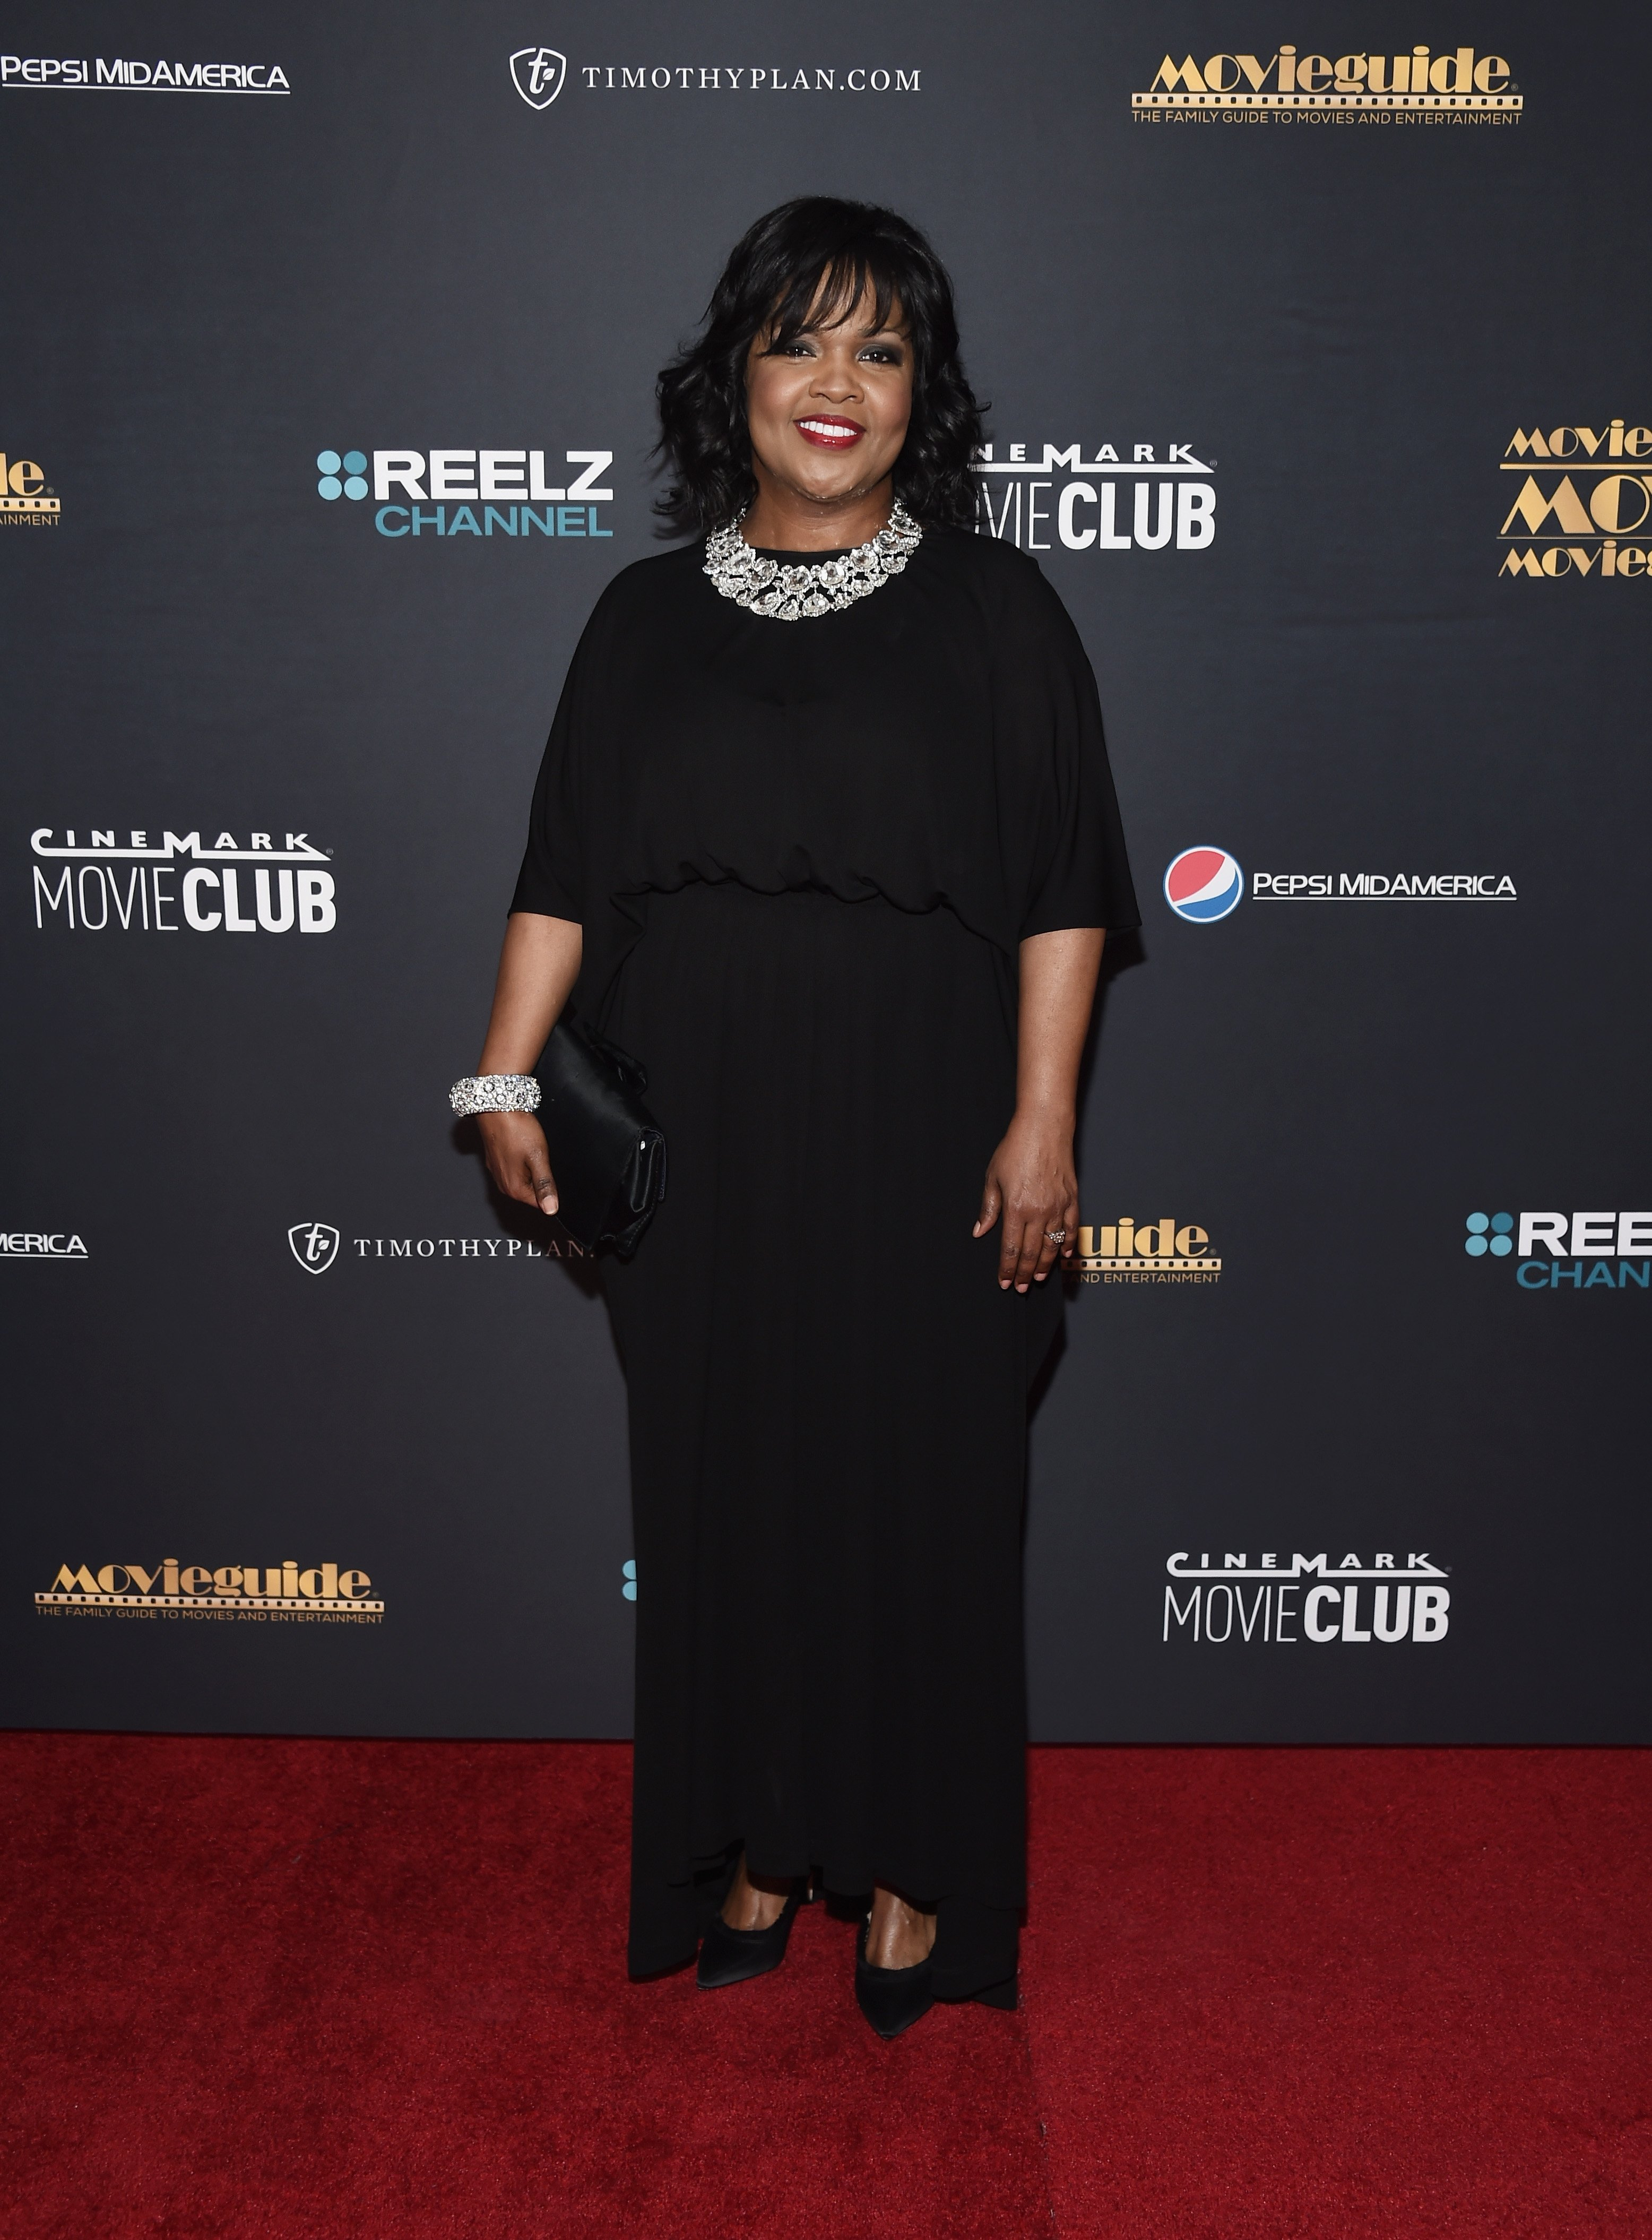 CeCe Winans attends the 26th Annual Movieguide Awards Faith and Family Gala in Universal City, California on February 2, 2018 | Photo: Getty Images